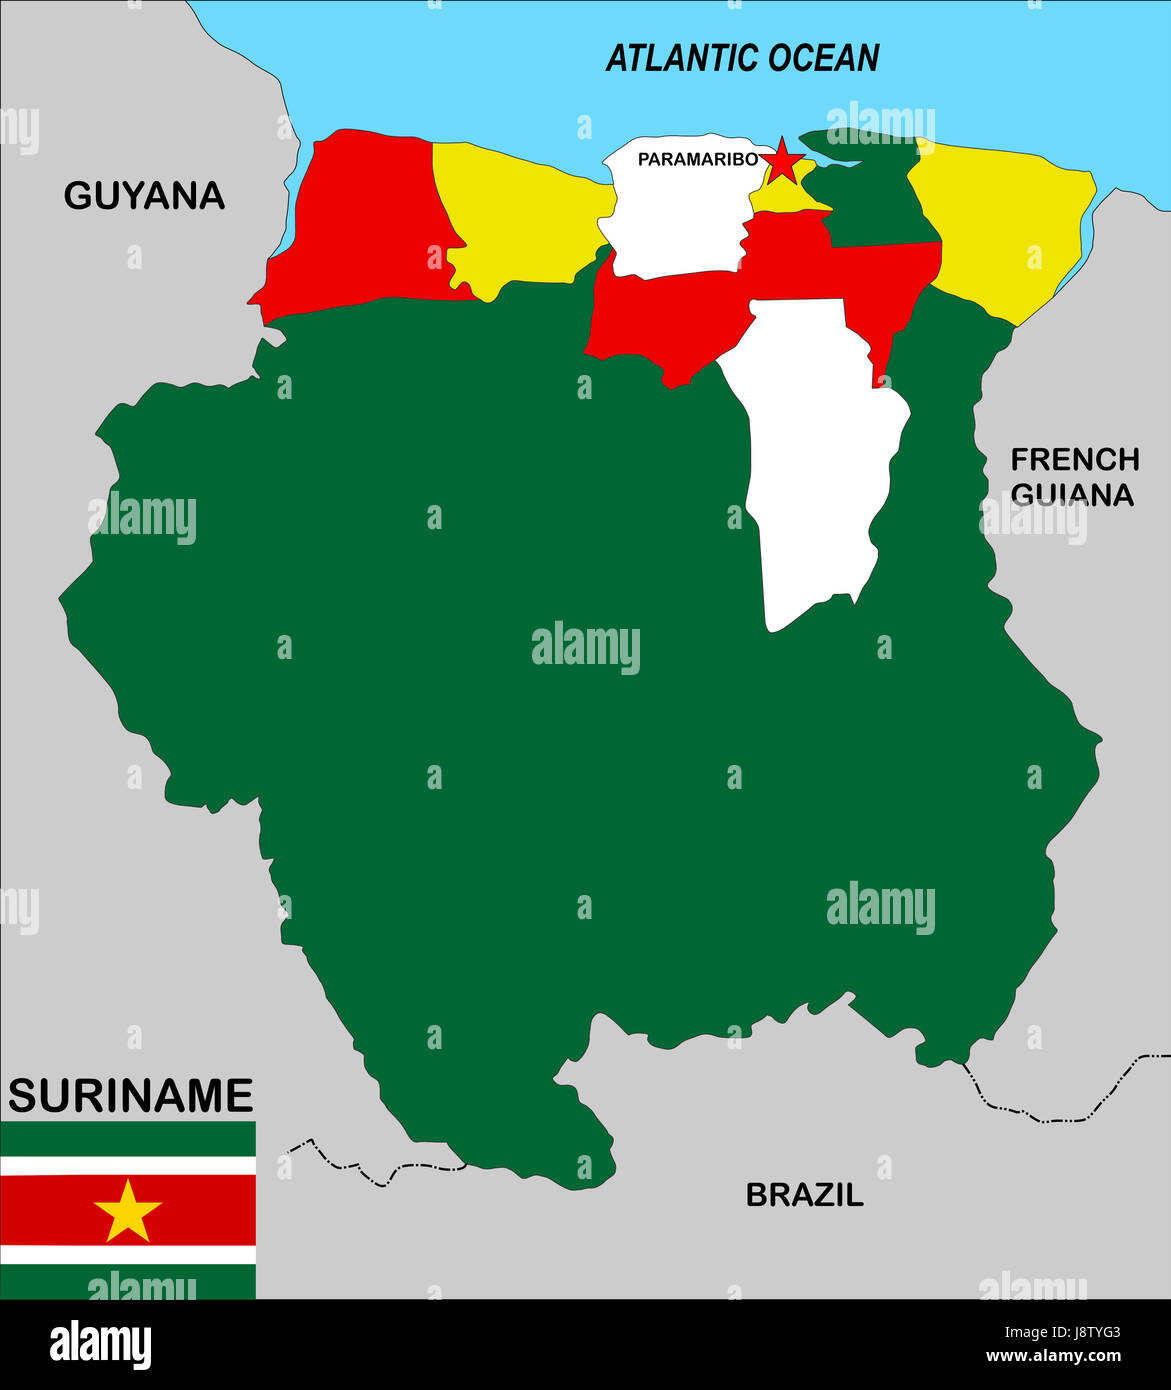 Suriname Map Atlas Map Of The World Political Flag Country - paramaribo map